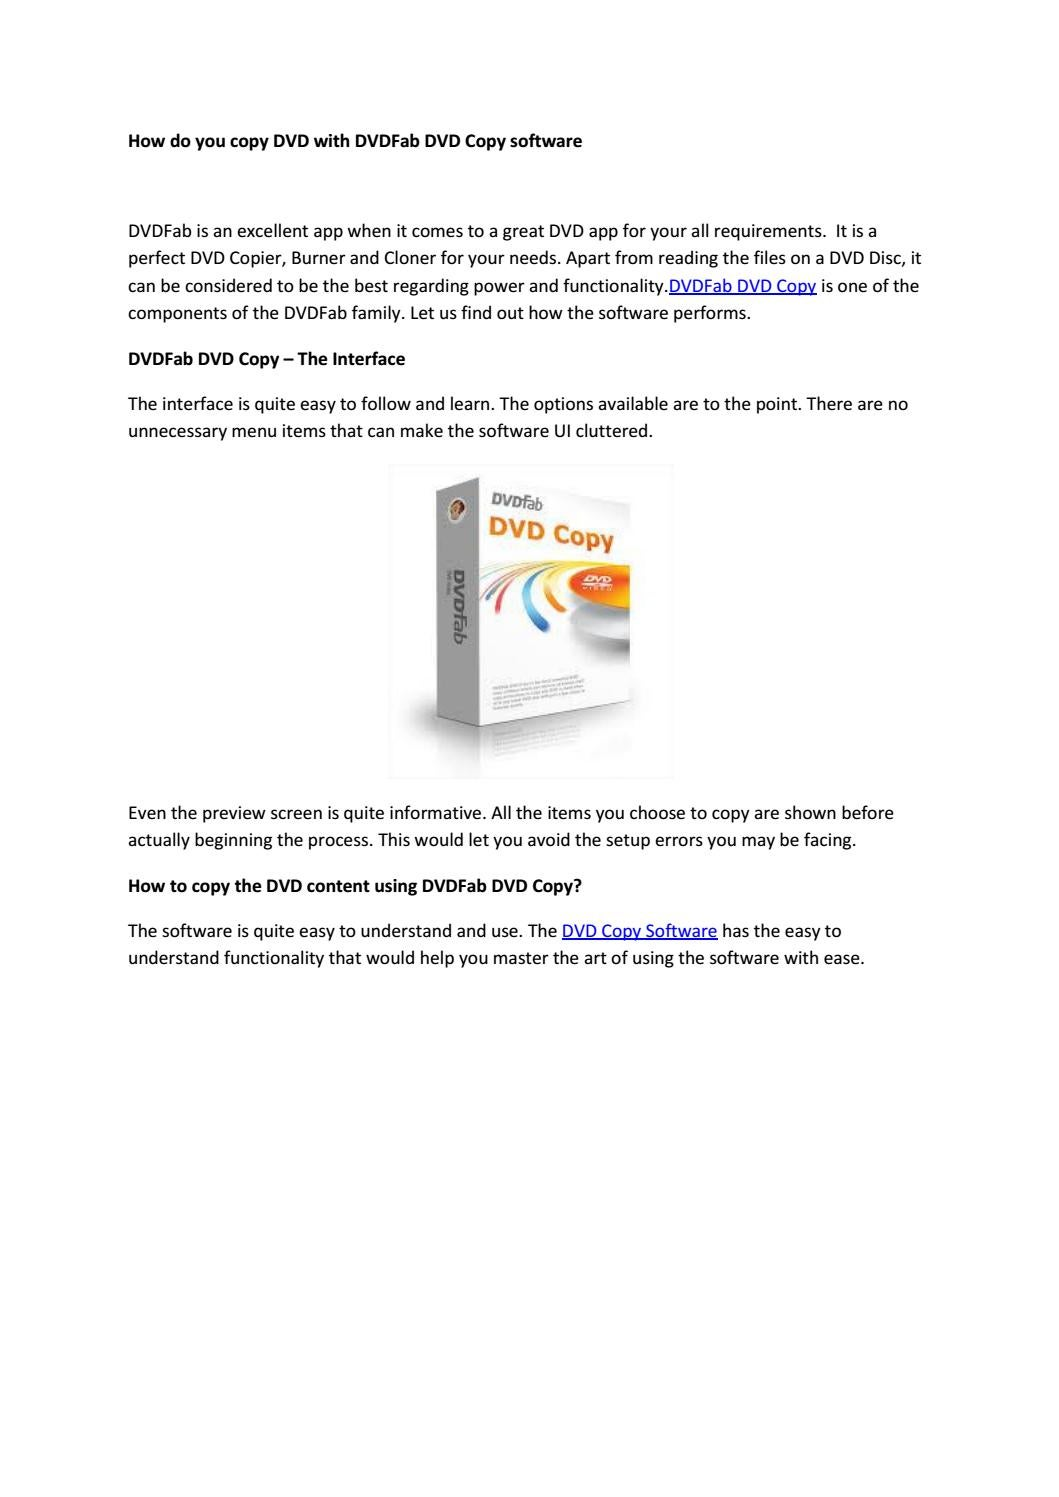 How do you copy dvd with dvdfab dvd copy software by